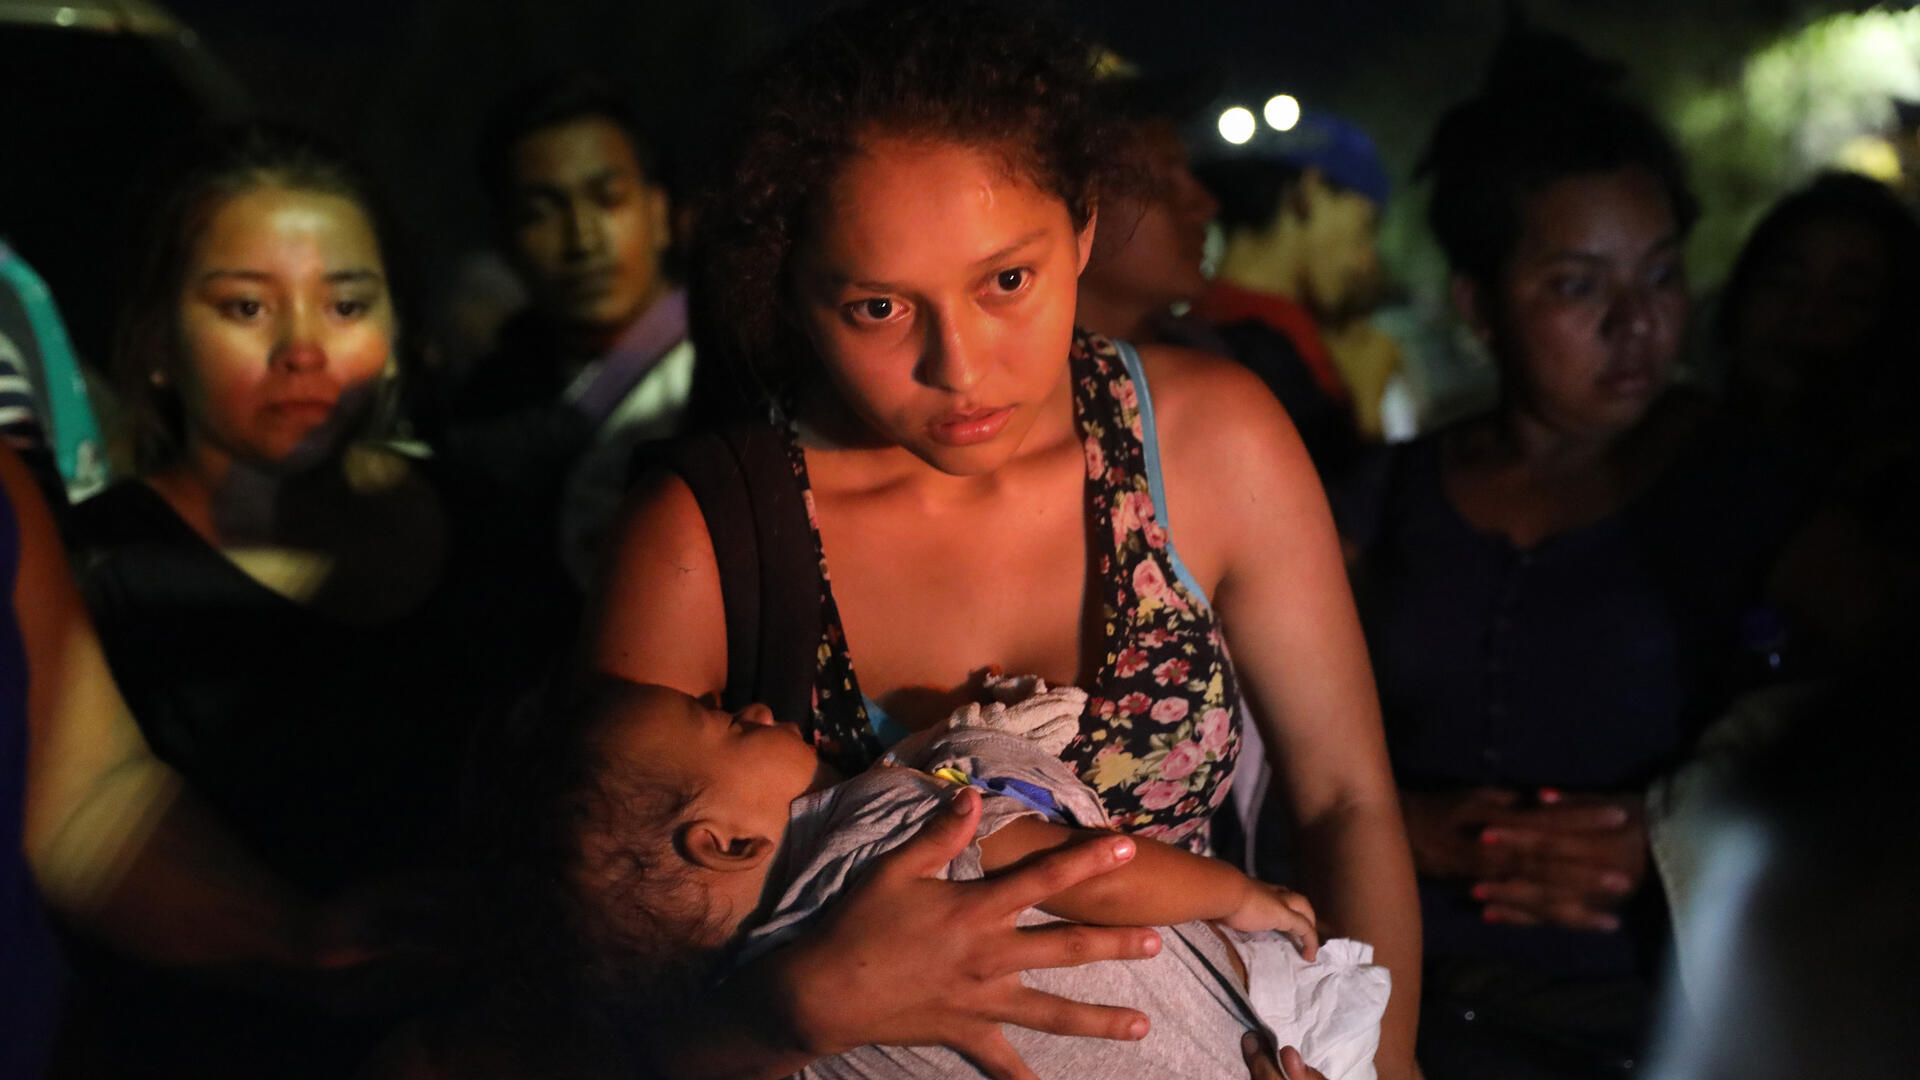 Central American asylum seekers wait for buses to take them to Tijuana on the U.S.-Mexico border. Photo: Getty Images